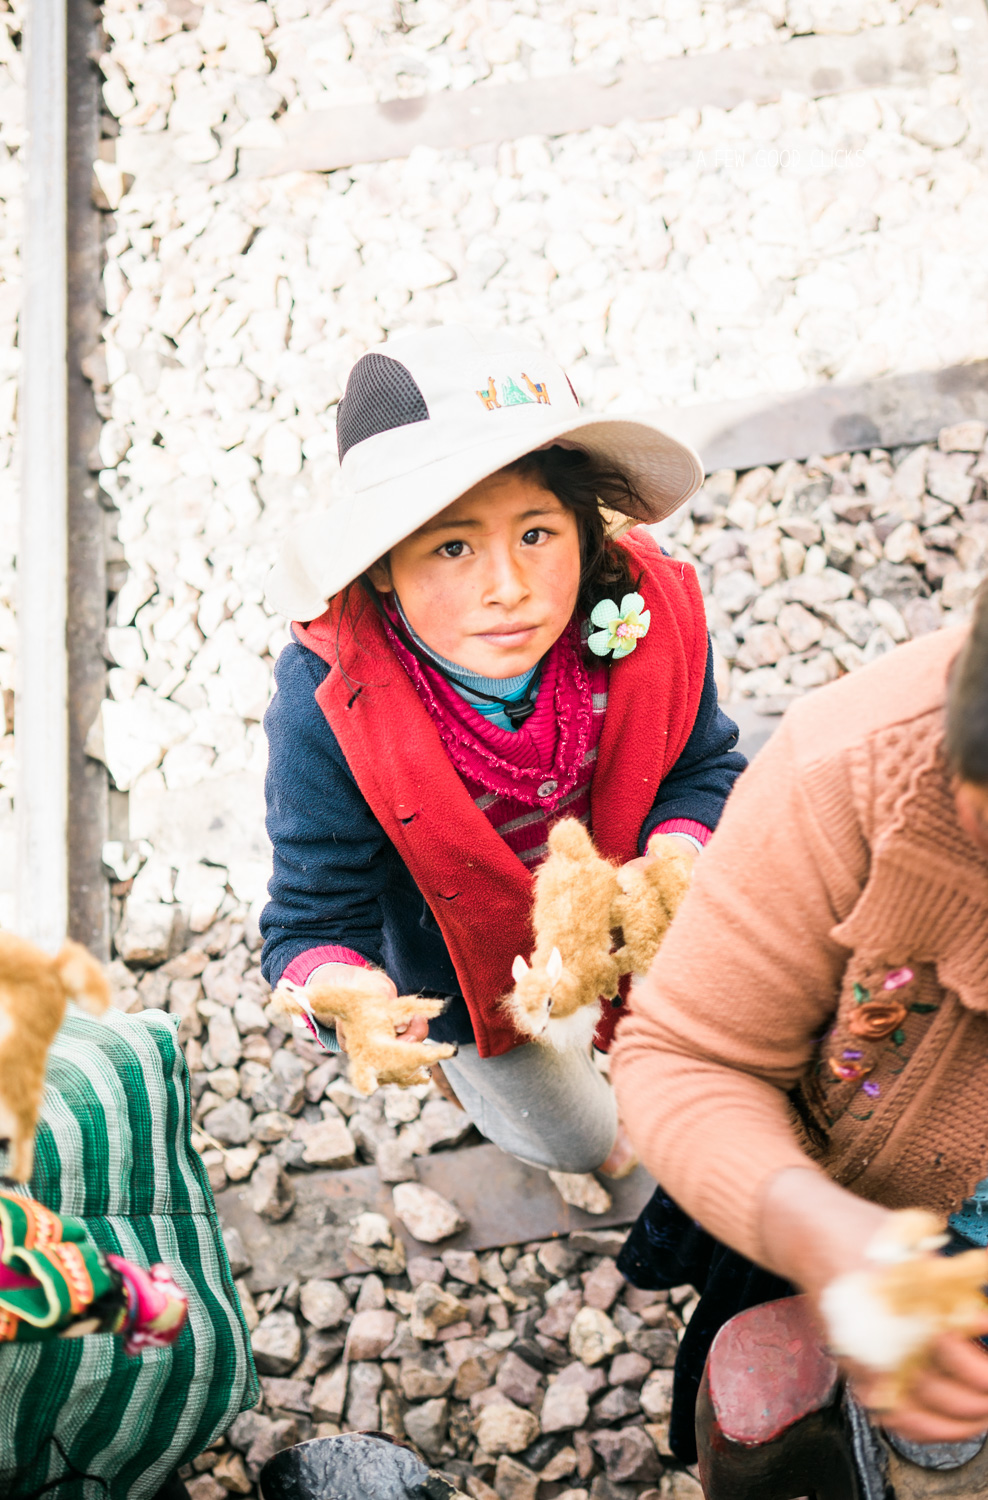 local-tribe-kid-selling-souvenirs-to-tourist-andean-explorer-puno